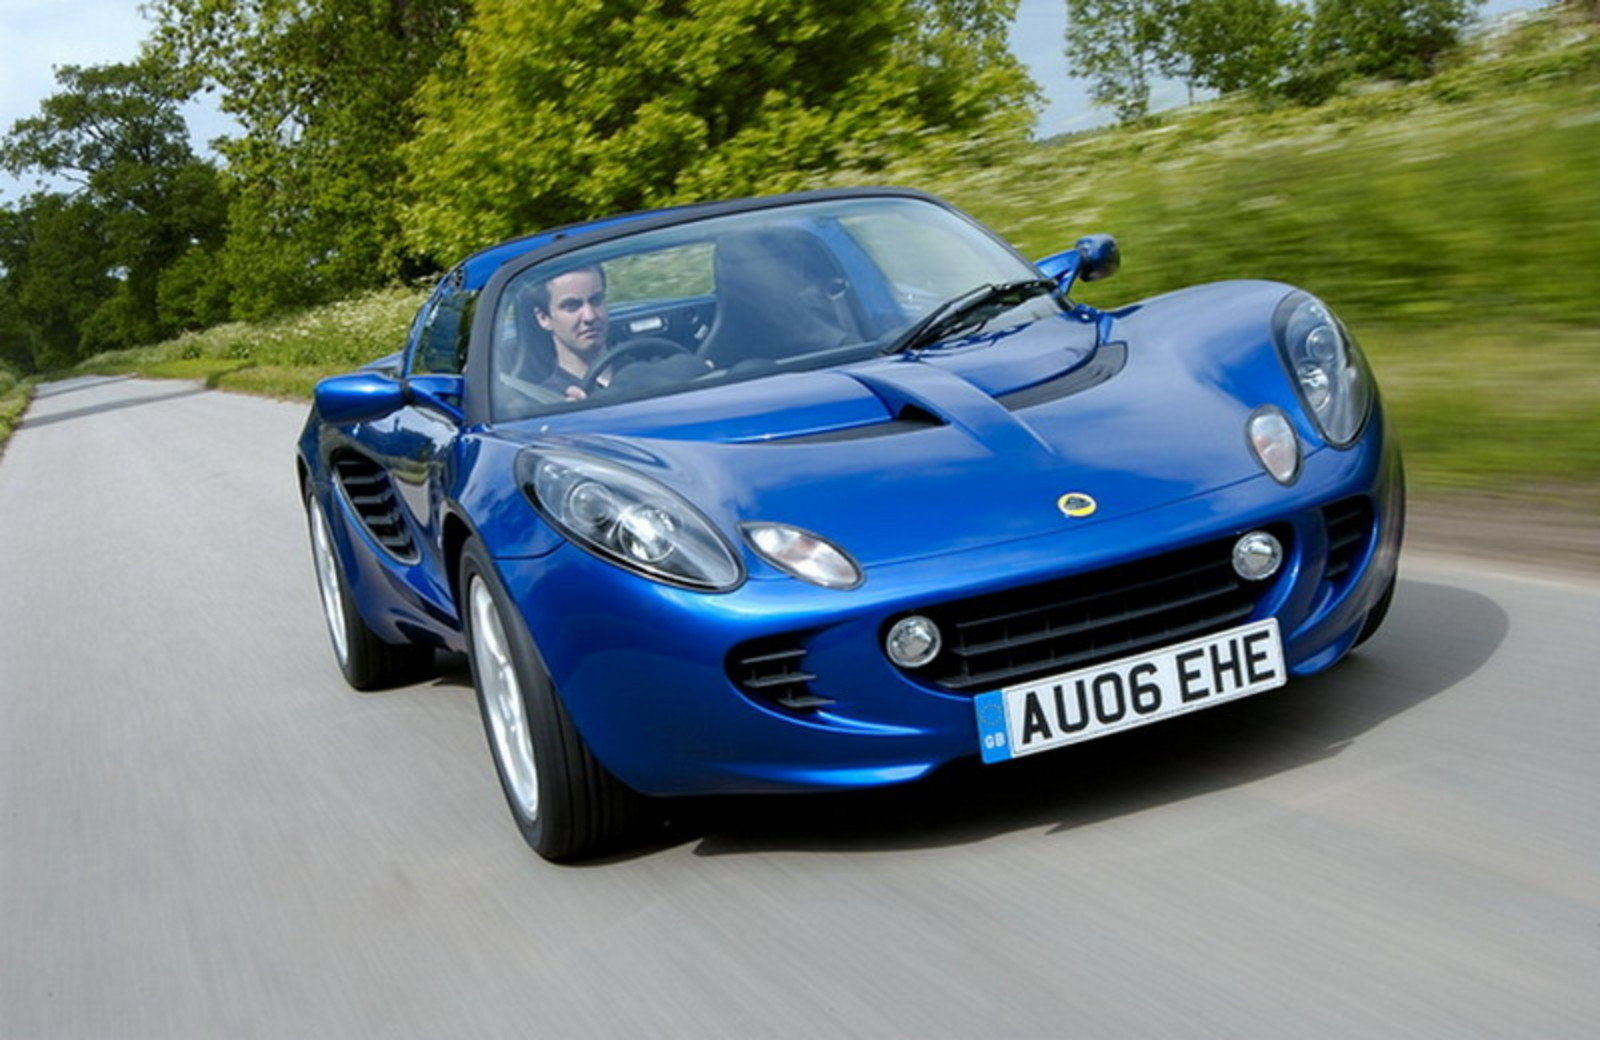 Toyota 0 60 >> 2006 Lotus Elise S Review - Top Speed